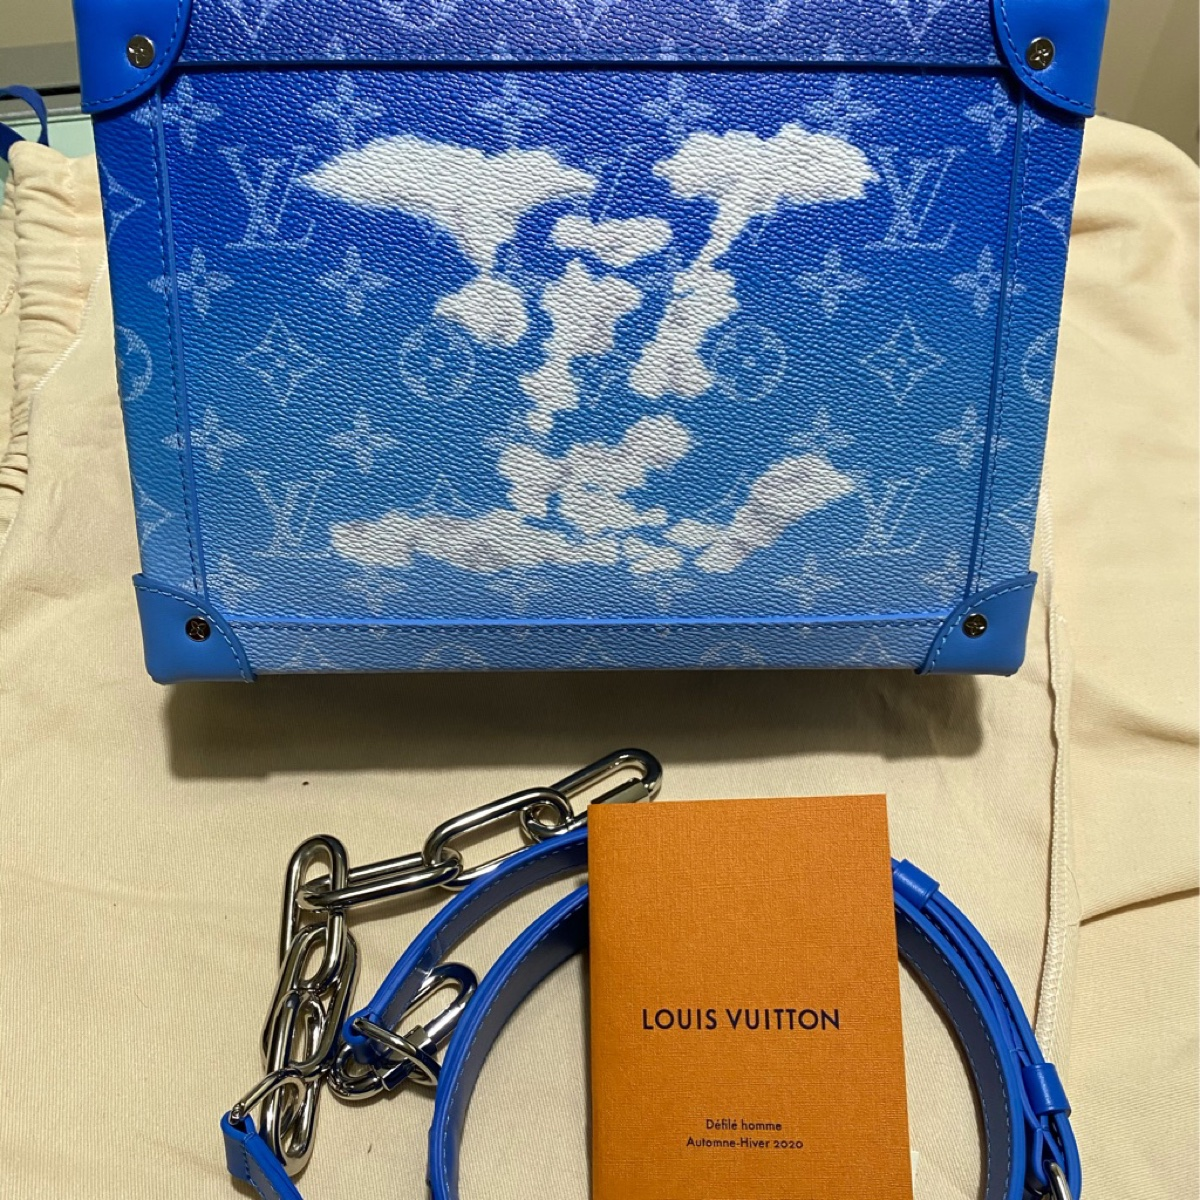 Louis Vuitton Clouds Soft Trunk